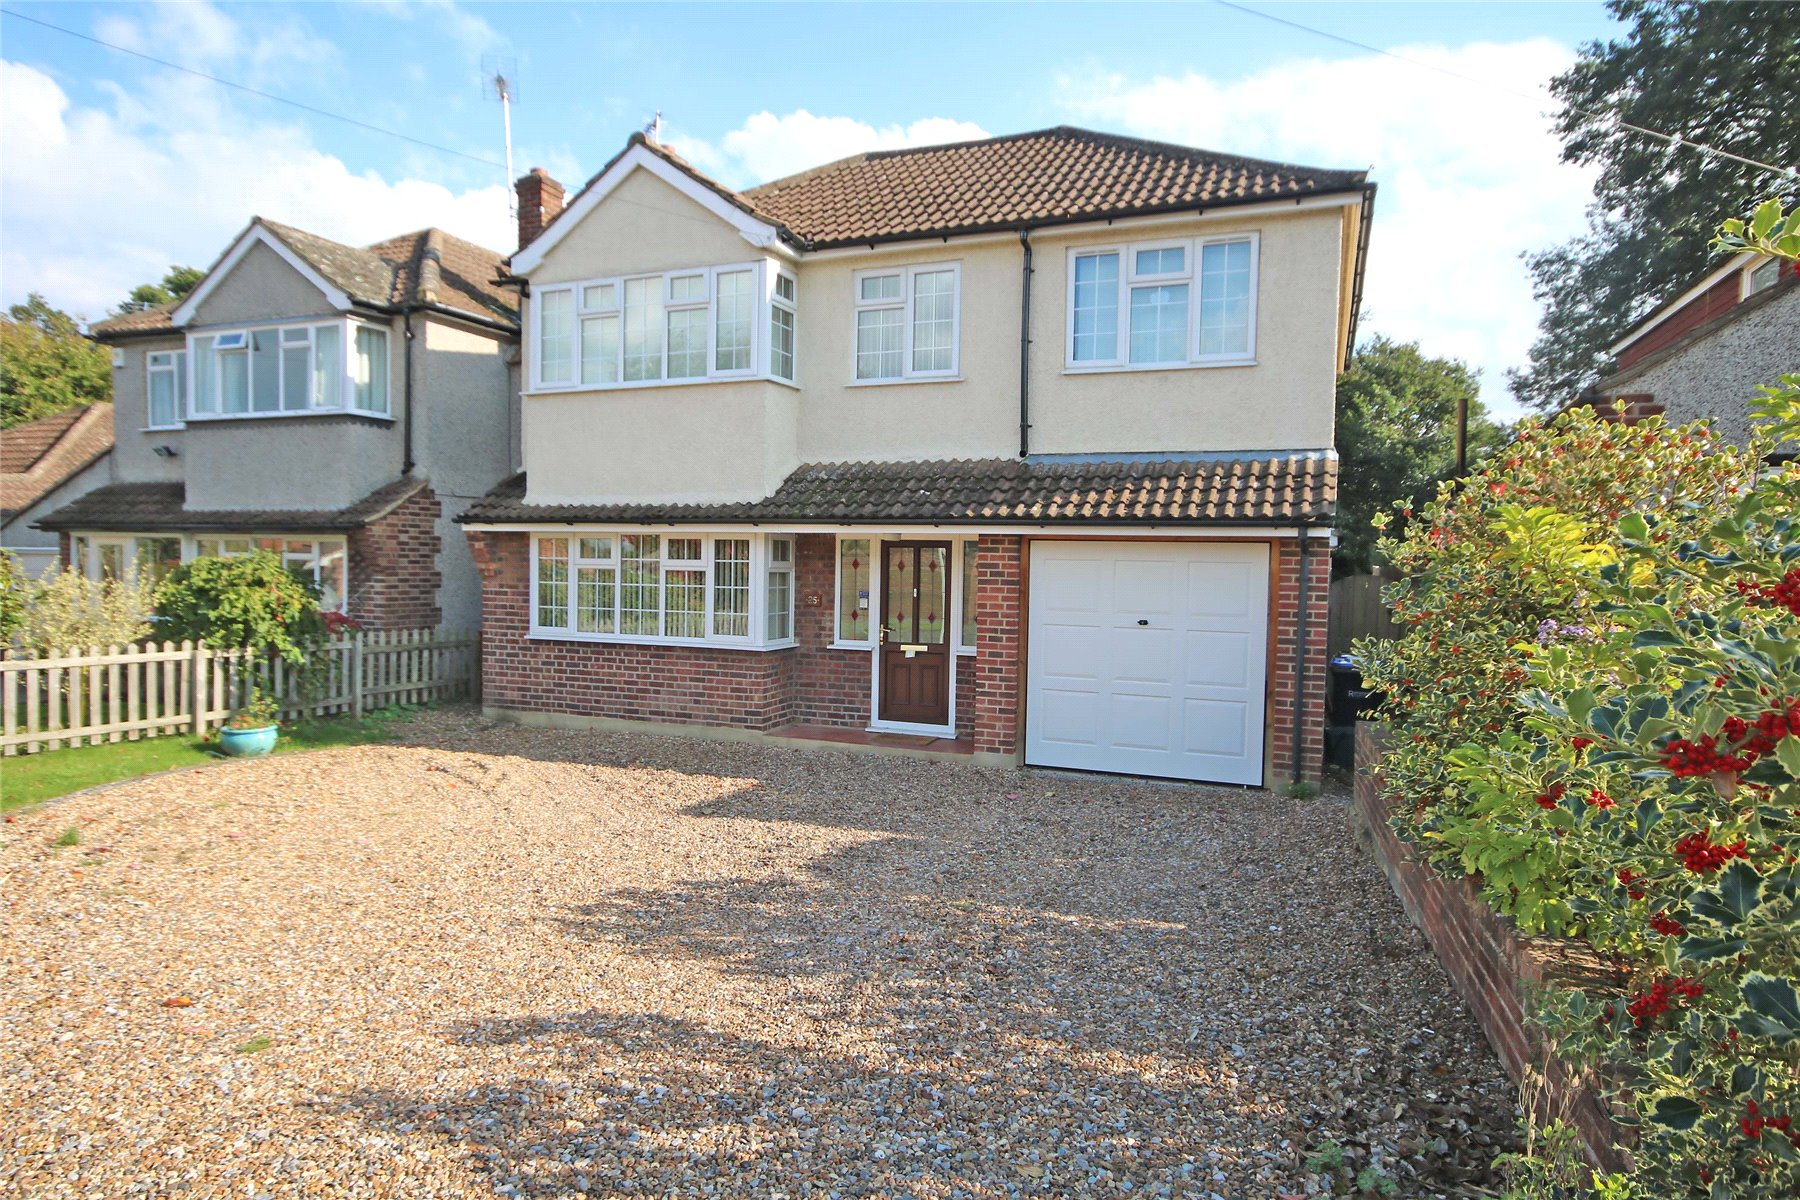 4 Bedrooms Detached House for sale in Franklands Drive, Rowtown, Surrey, KT15